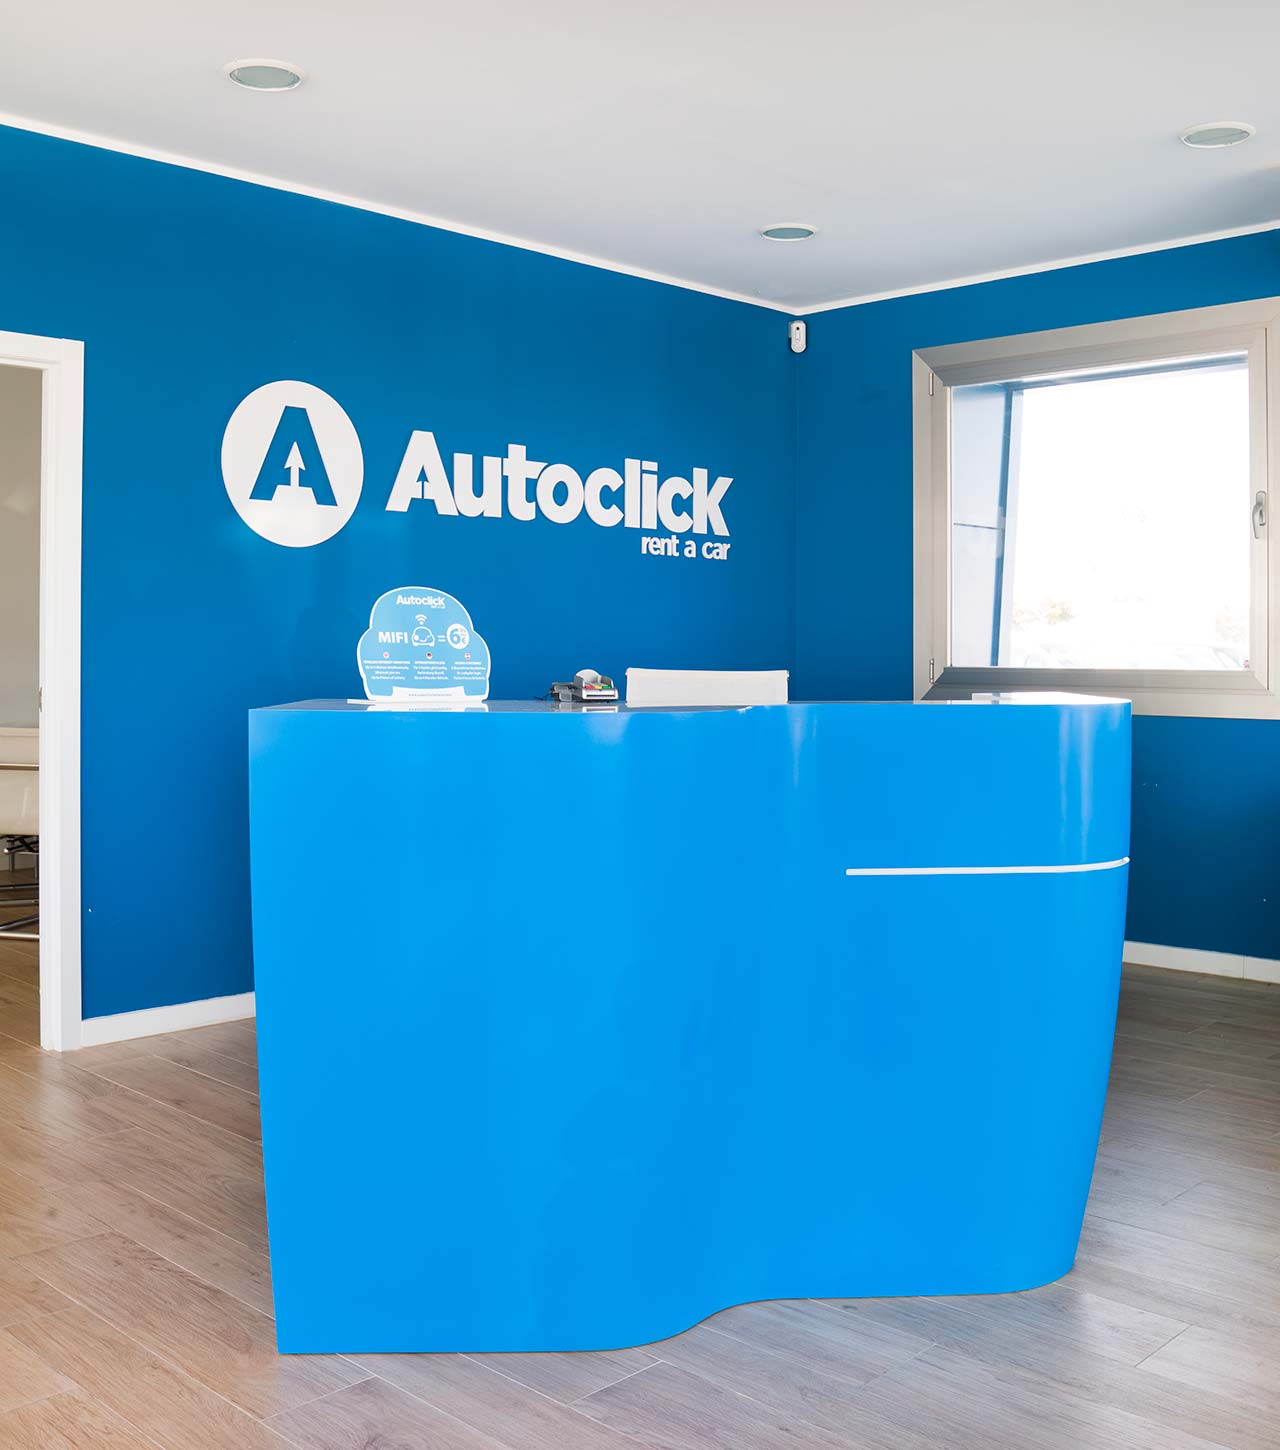 autoclick rent a car - palma de mallorca - españa. Solid Surface  家具